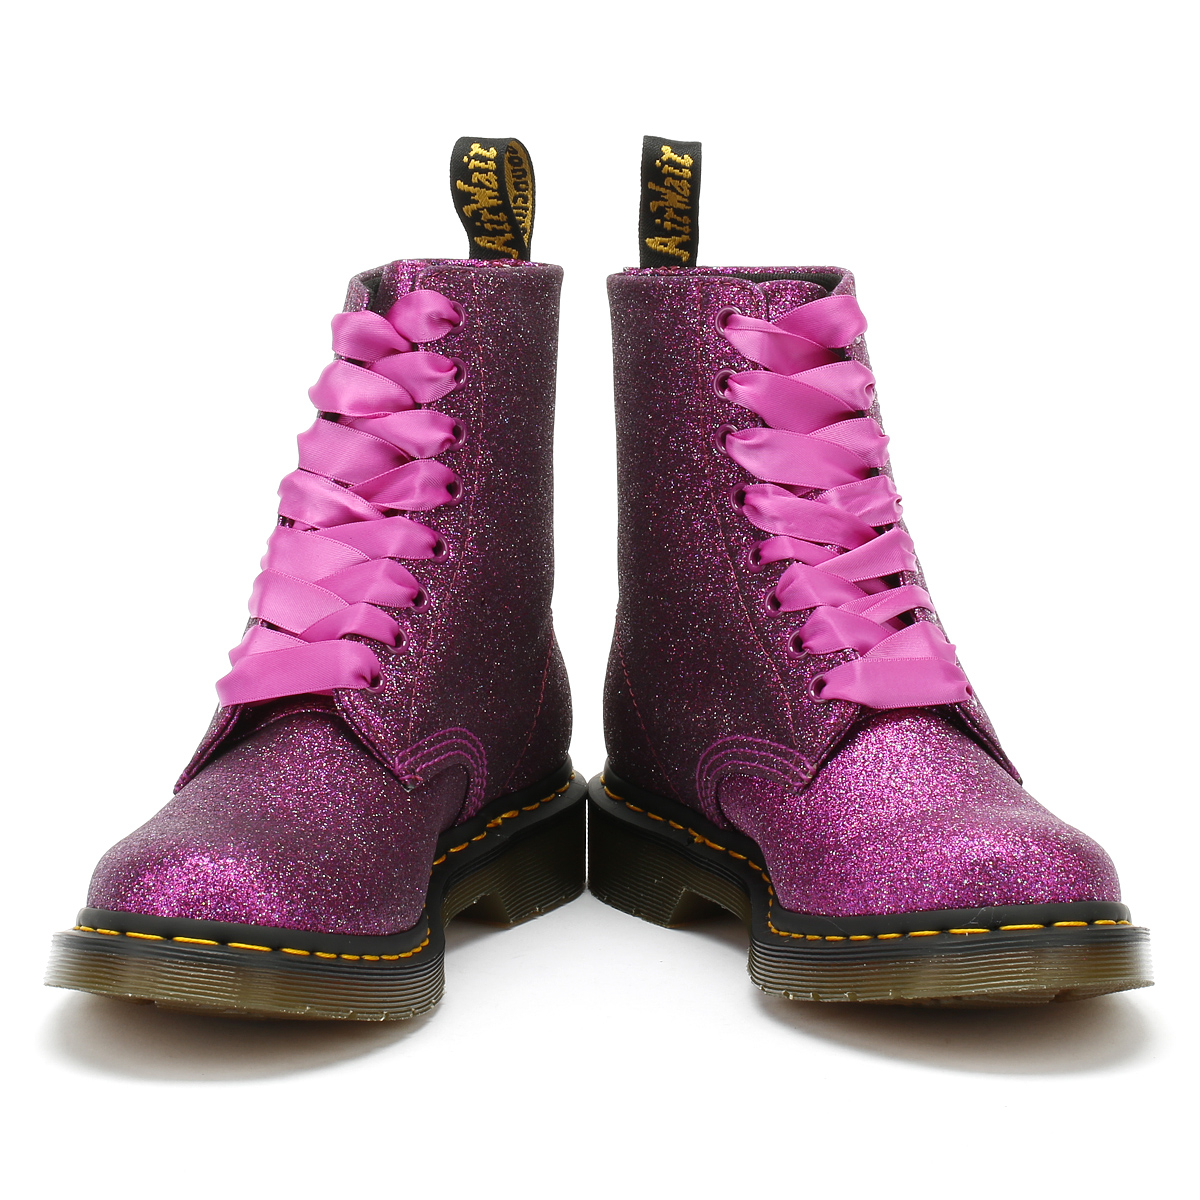 3335054d22 Dr. Martens Womens Pascal Boots Purple Glitter 1460 Lace Up Casual Winter  Shoes